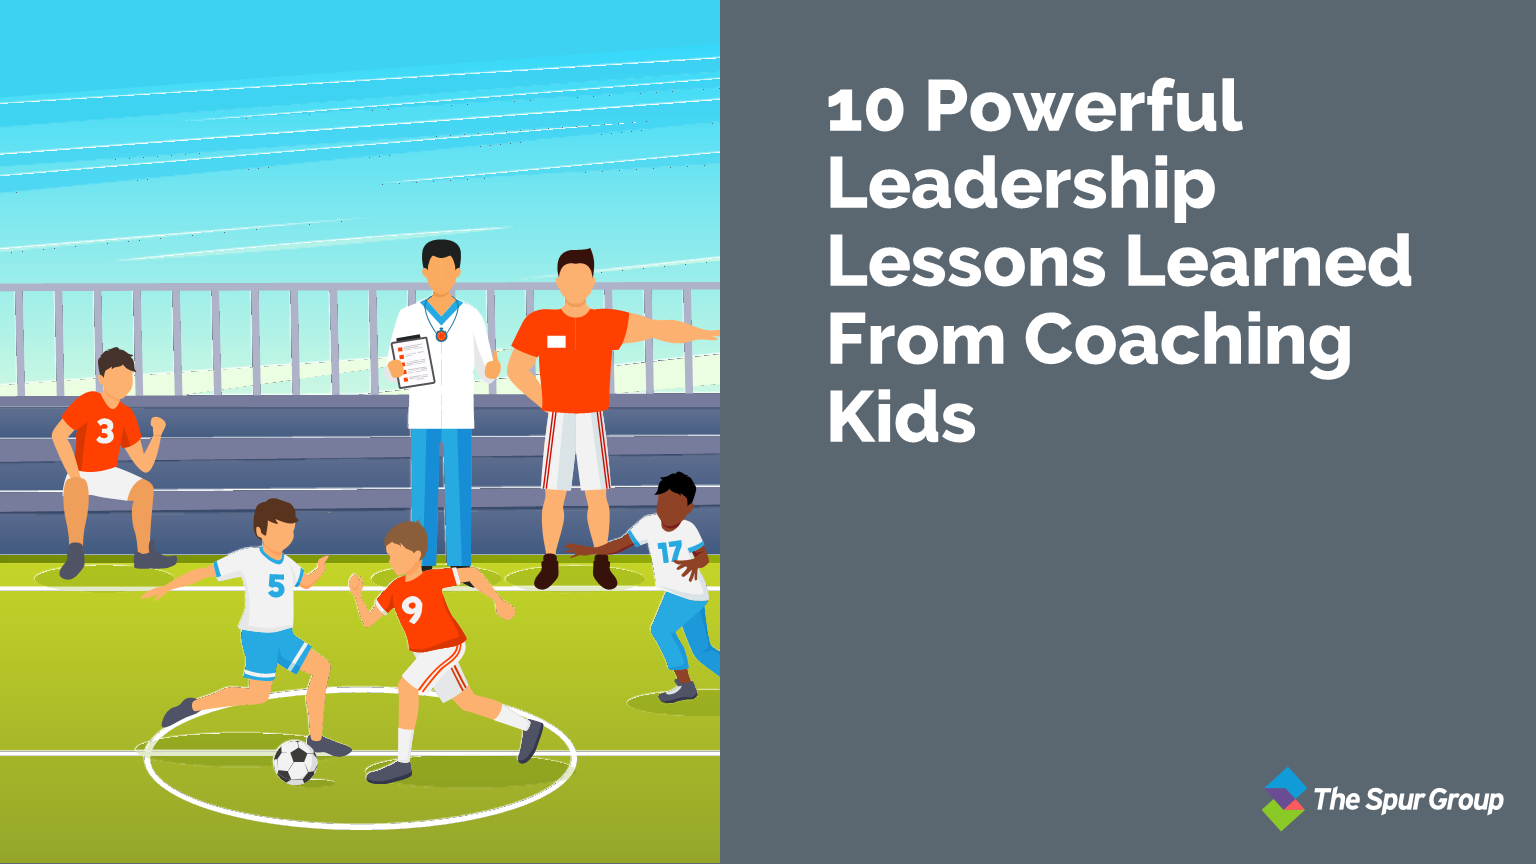 10 Powerful Leadership Lessons Learned From Coaching Kids Featured Image